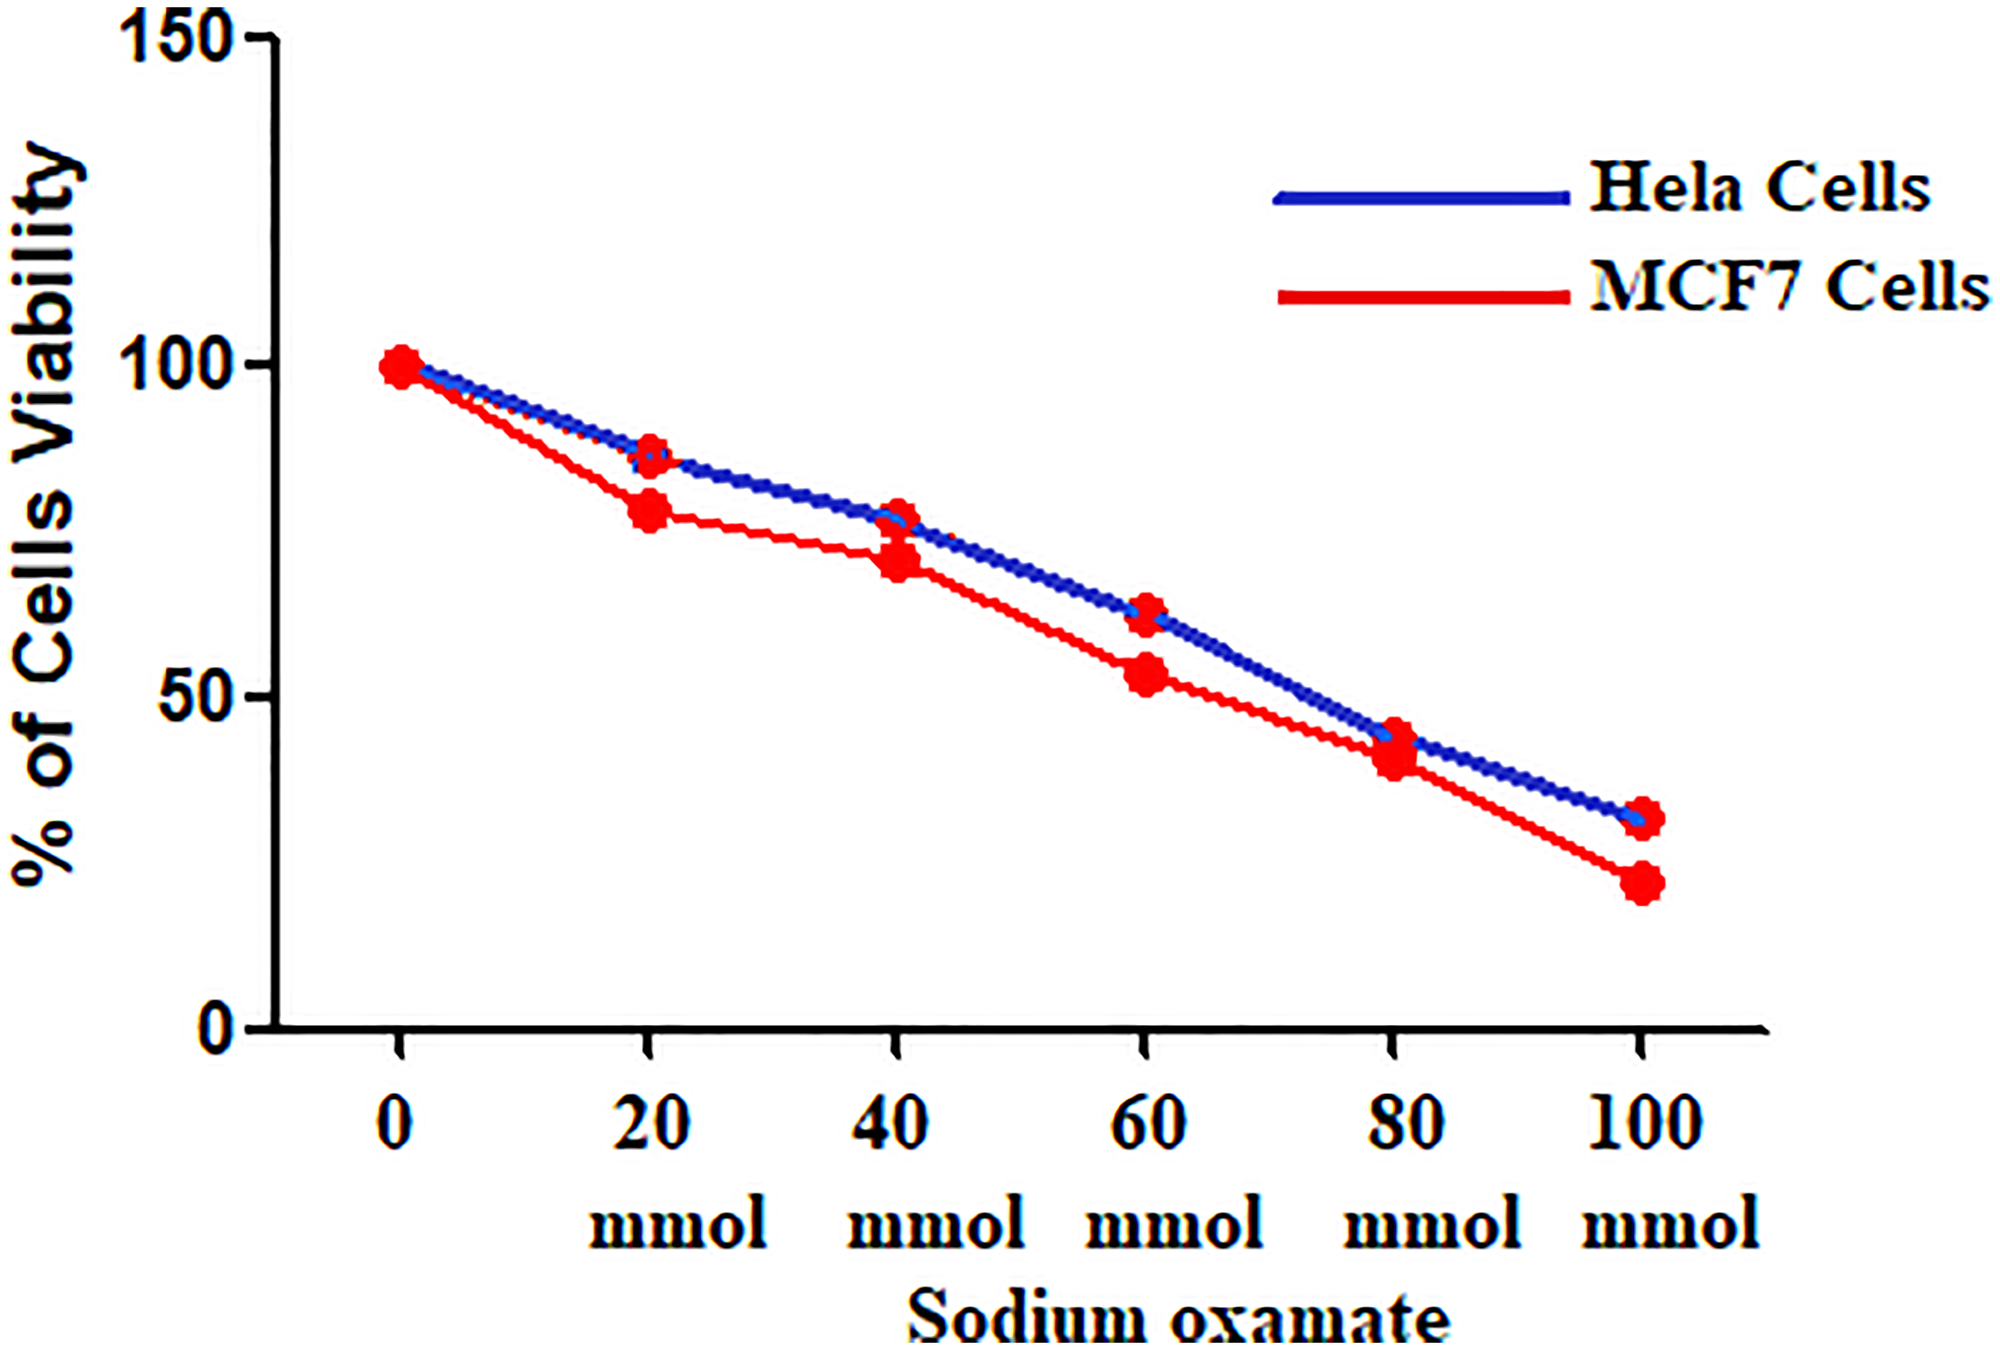 HeLa and MCF-7 Cell viability at different concentrations of sodium oxamate.